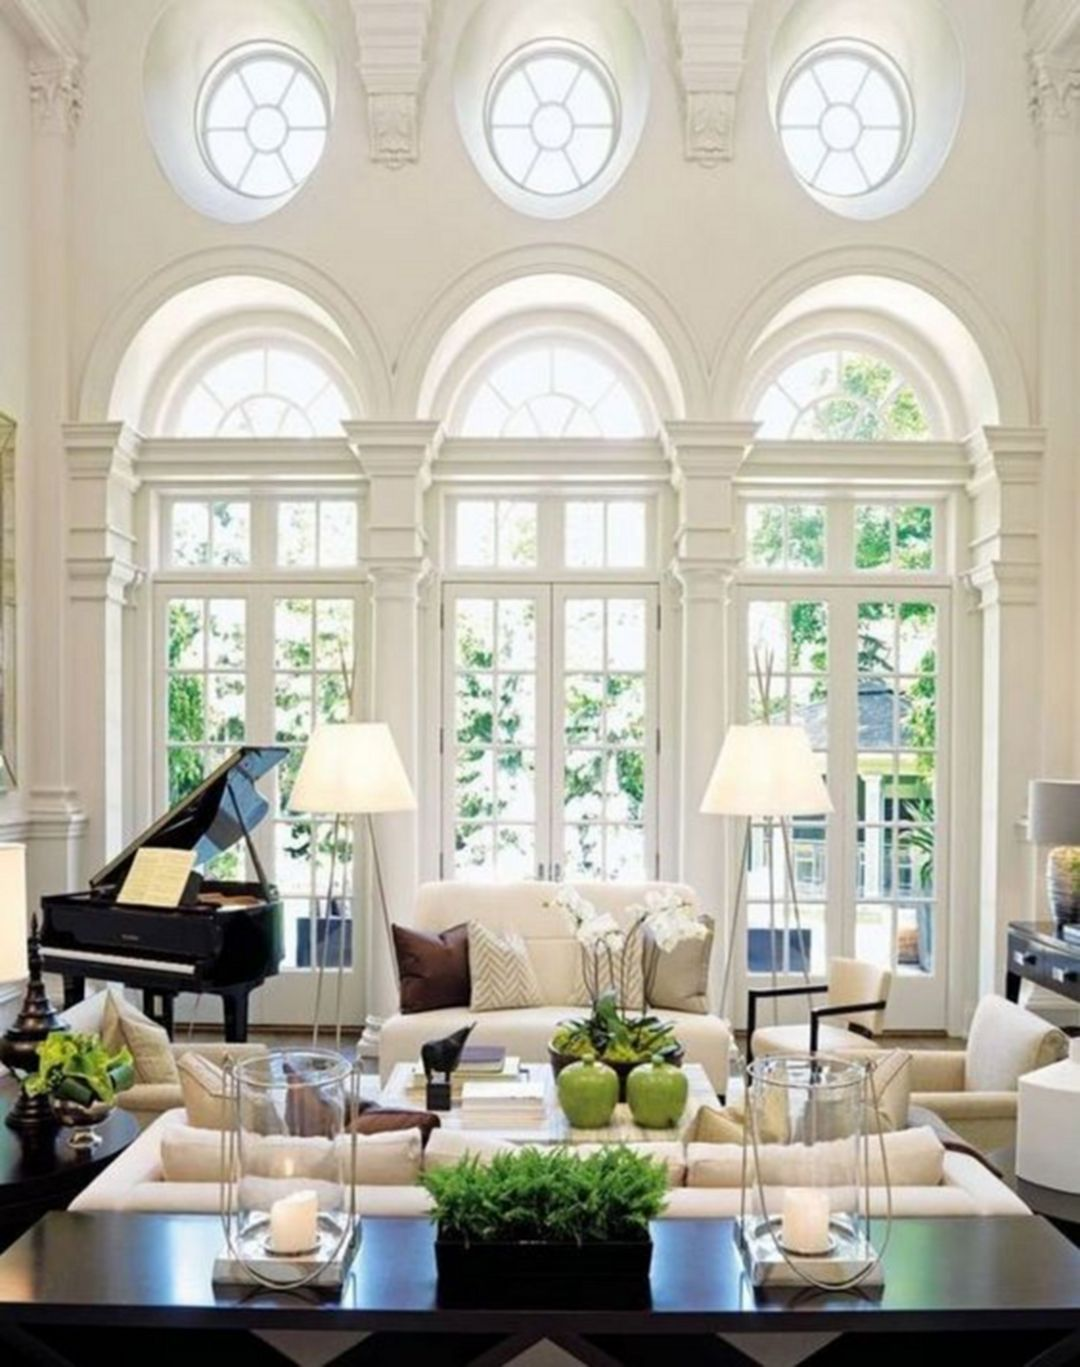 French Provincial Style Interiors French Living Room Design French Living Rooms French Country Living Room